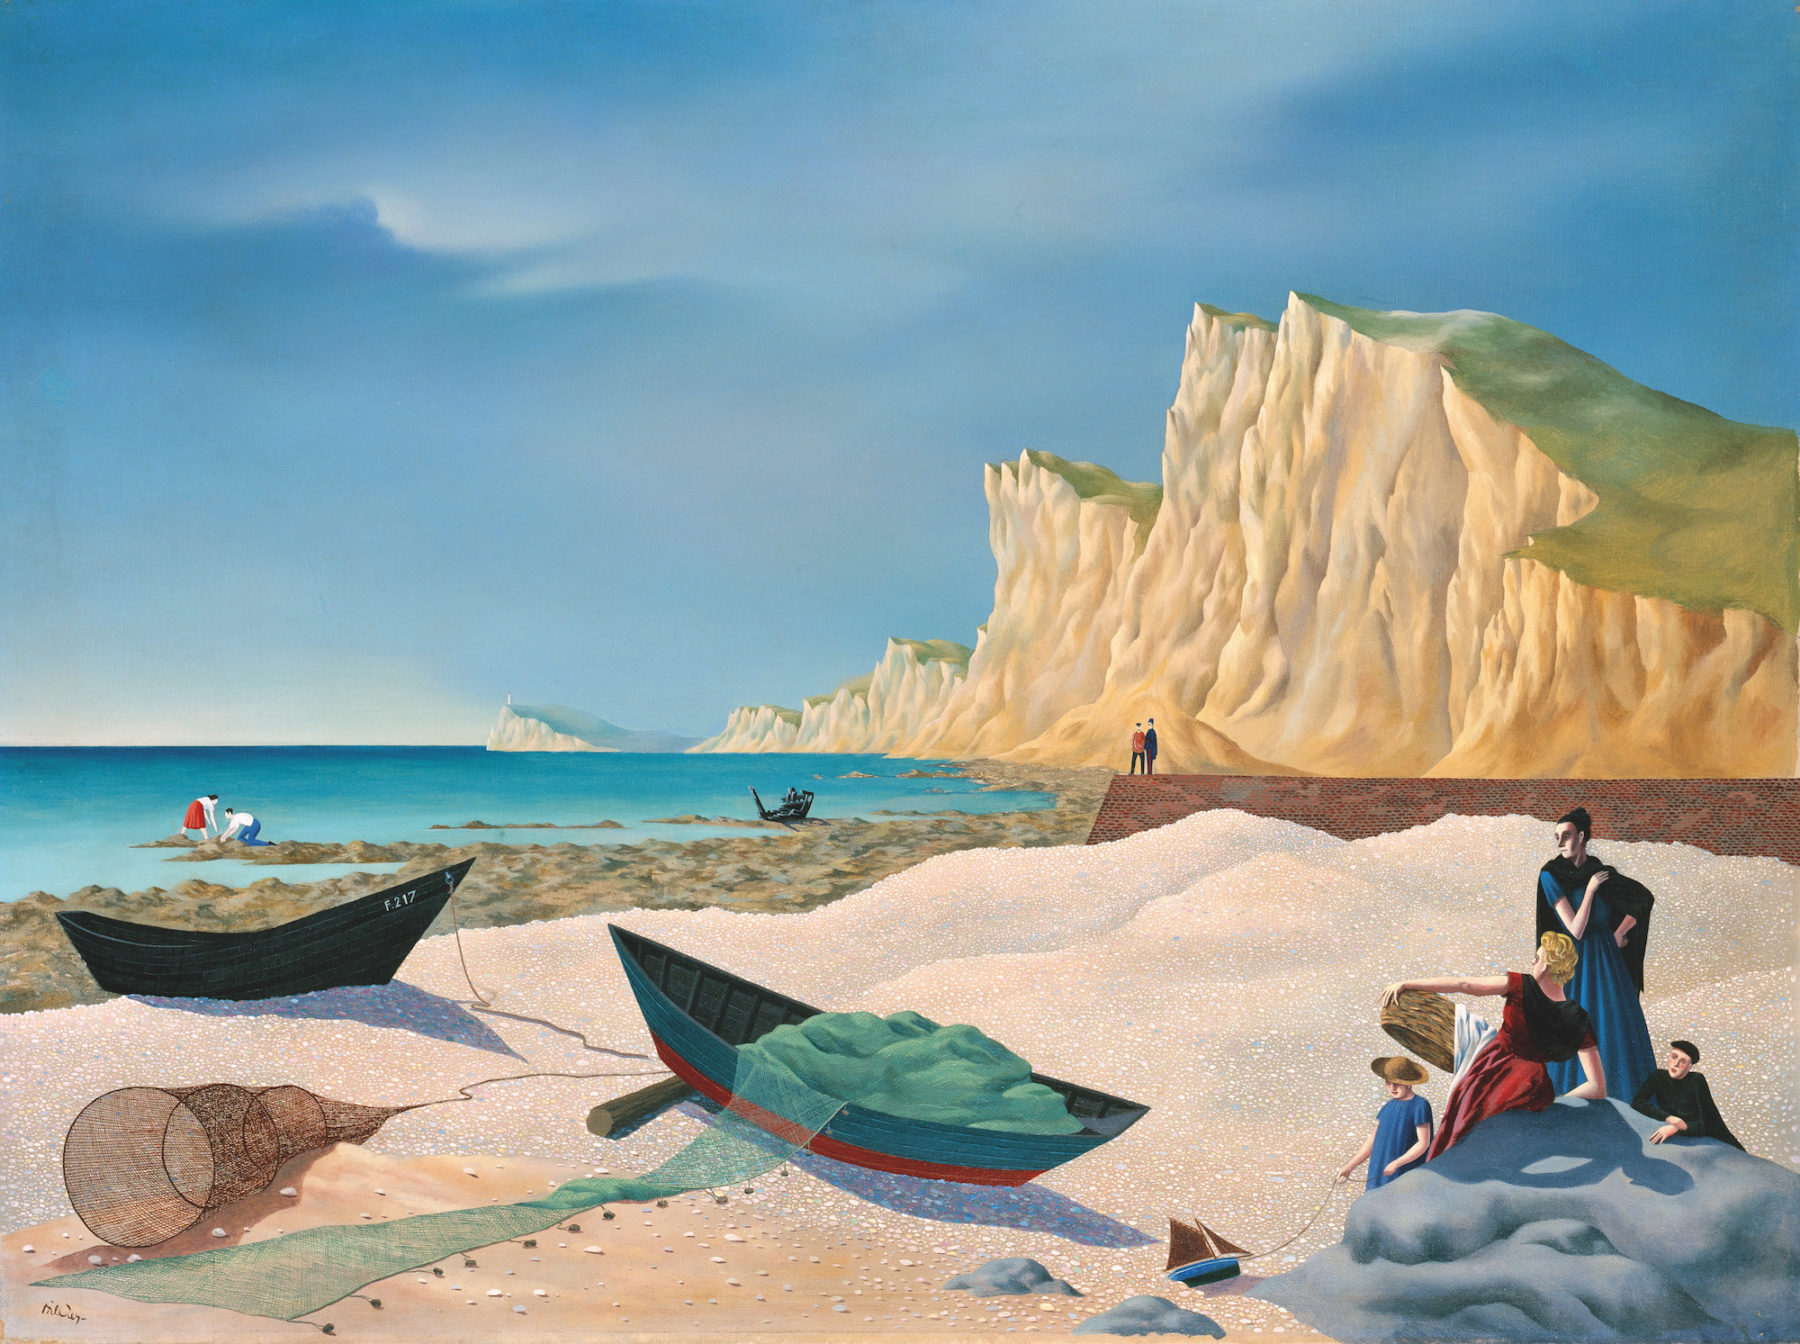 In the foreground of this beach scene is pebbled sand on which two rowing boats have been moored. In one of the boats a green fishing net has been piled in, with the end overhanging and laying on the sand. Two women, a girl and a boy lean against a rock. The women gaze out to sea, the girl at the toy boat she is holding, and the boy looks towards the viewer. Behind the sand is a brick jetty with two people standing on its edge. Rock pools jut out into the sea in front of the people. A lady and man stand crouching downwards on the rocks, and a ruined ships hulk sits atop the rocks. The sea is a deep blue-green. Overlooking the scene are crumbling cliffs and a lighthouse is in the distance.